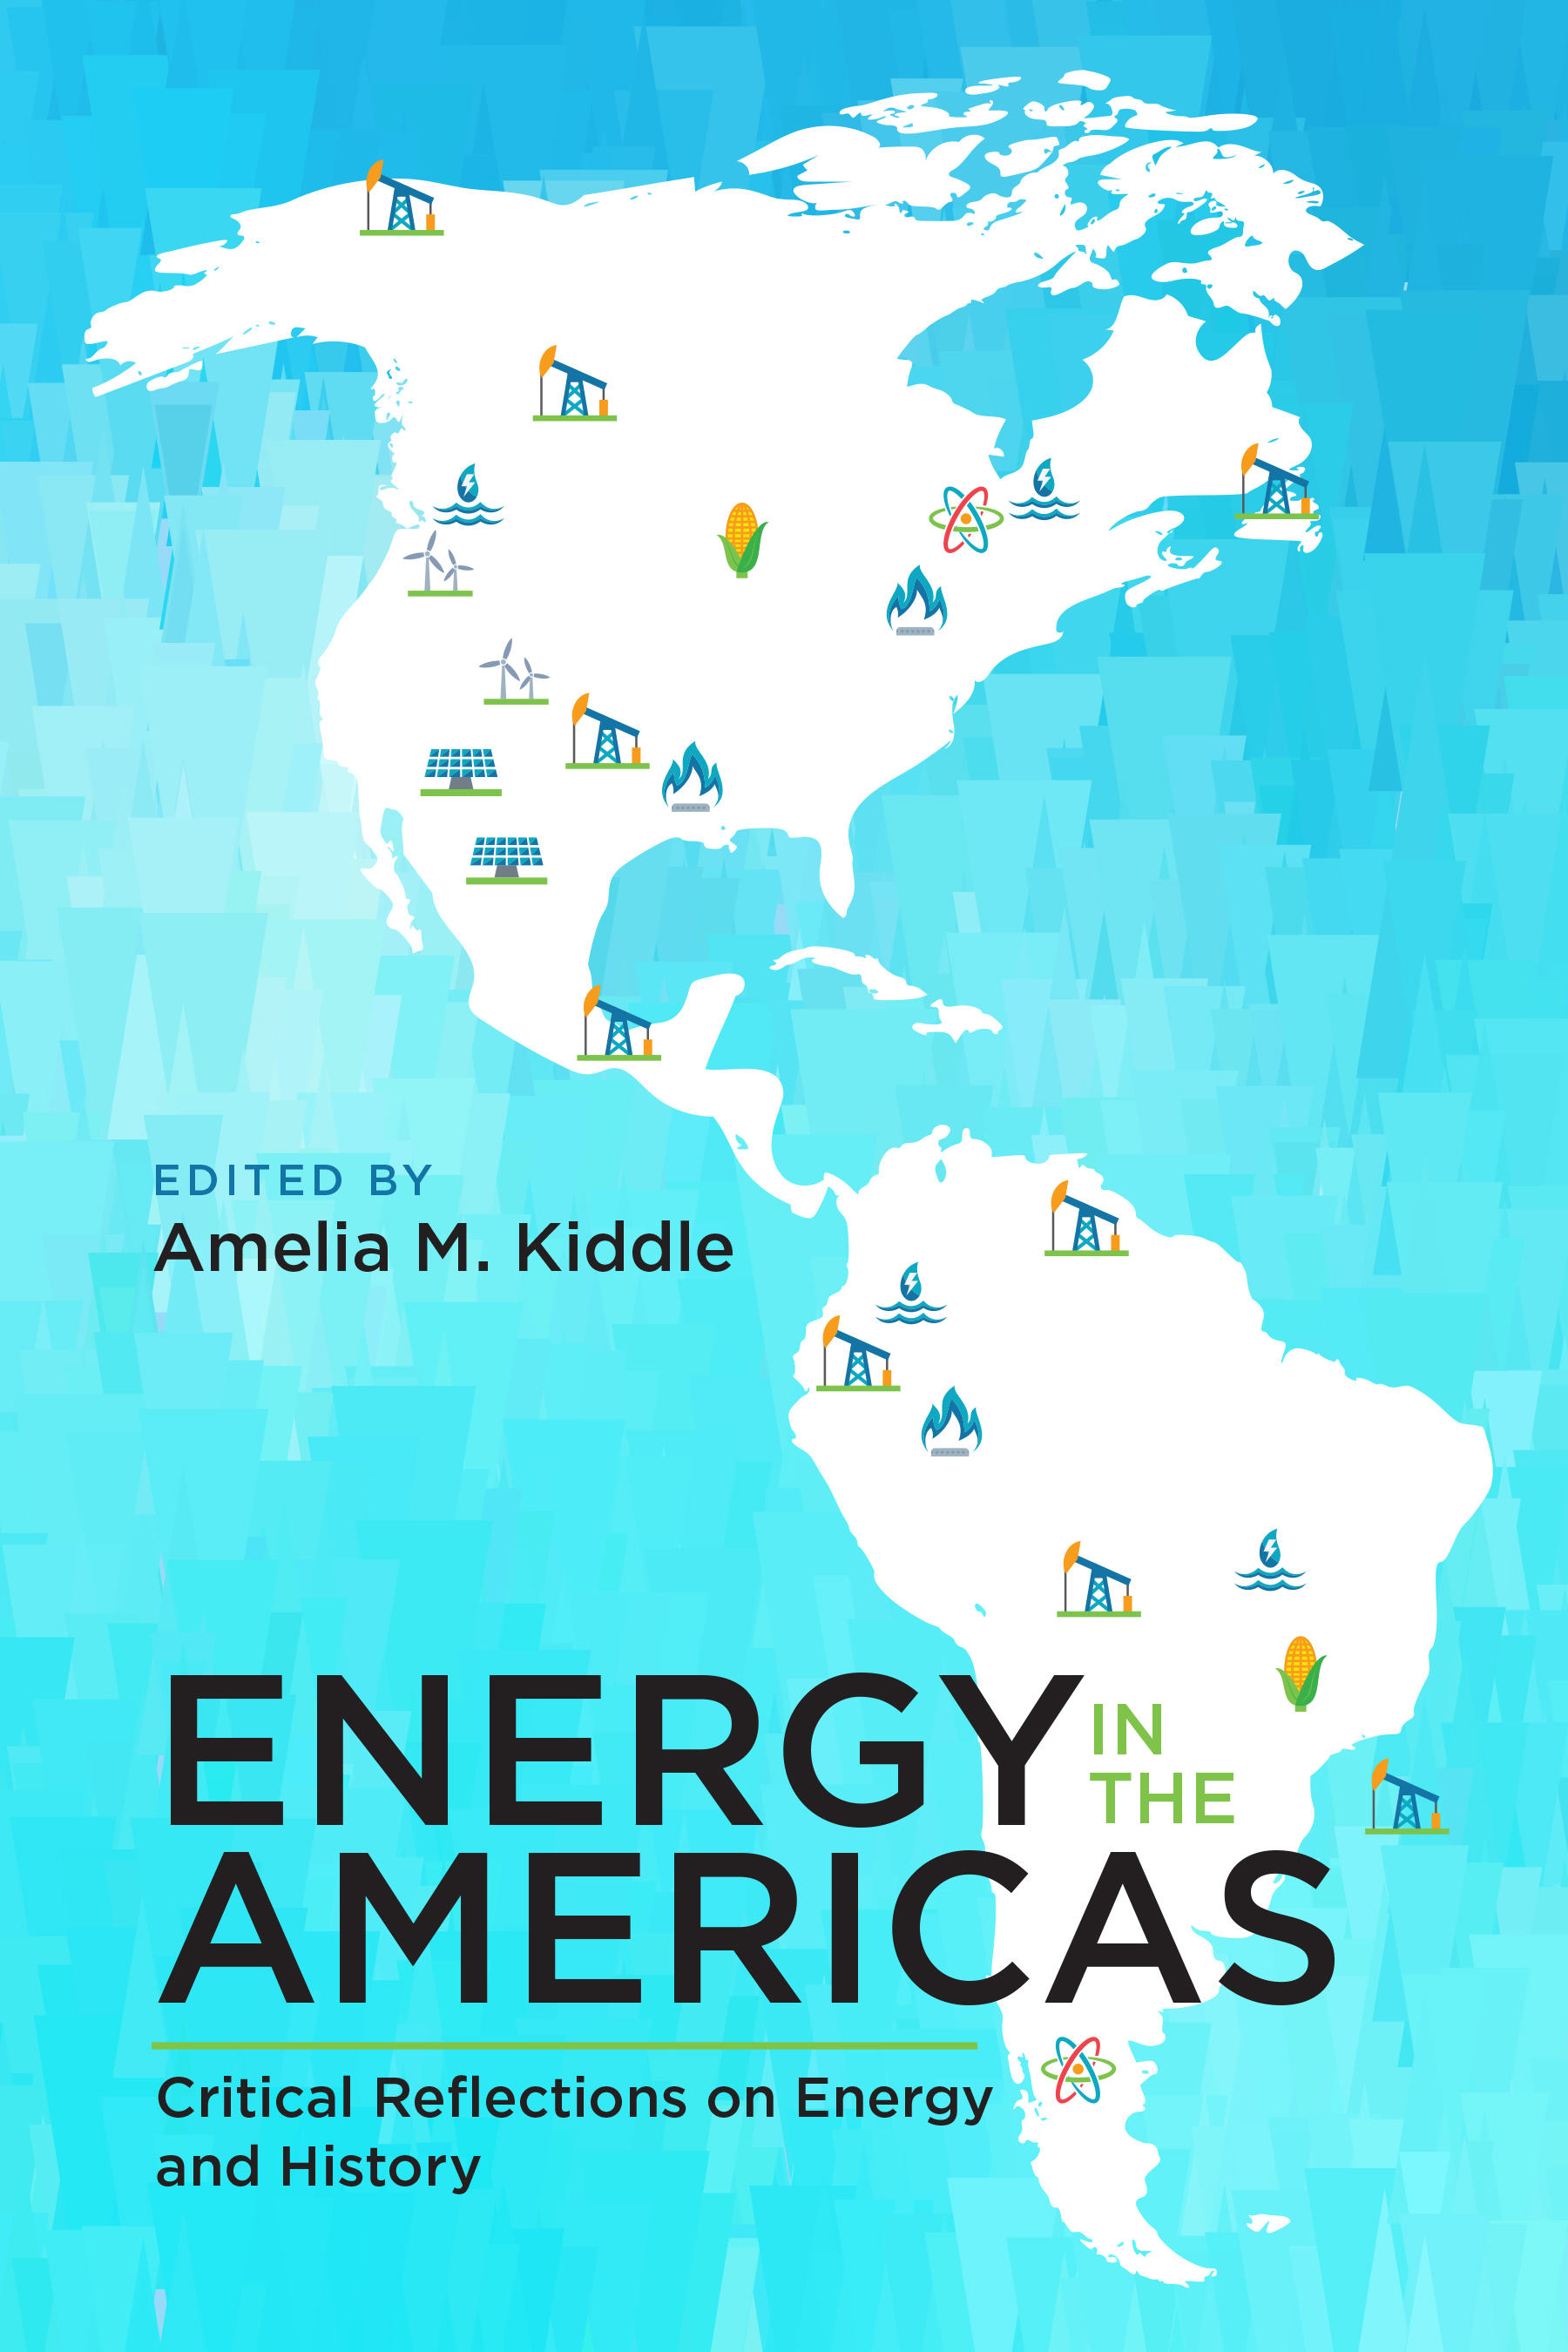 Cover Image for: Energy in the Americas